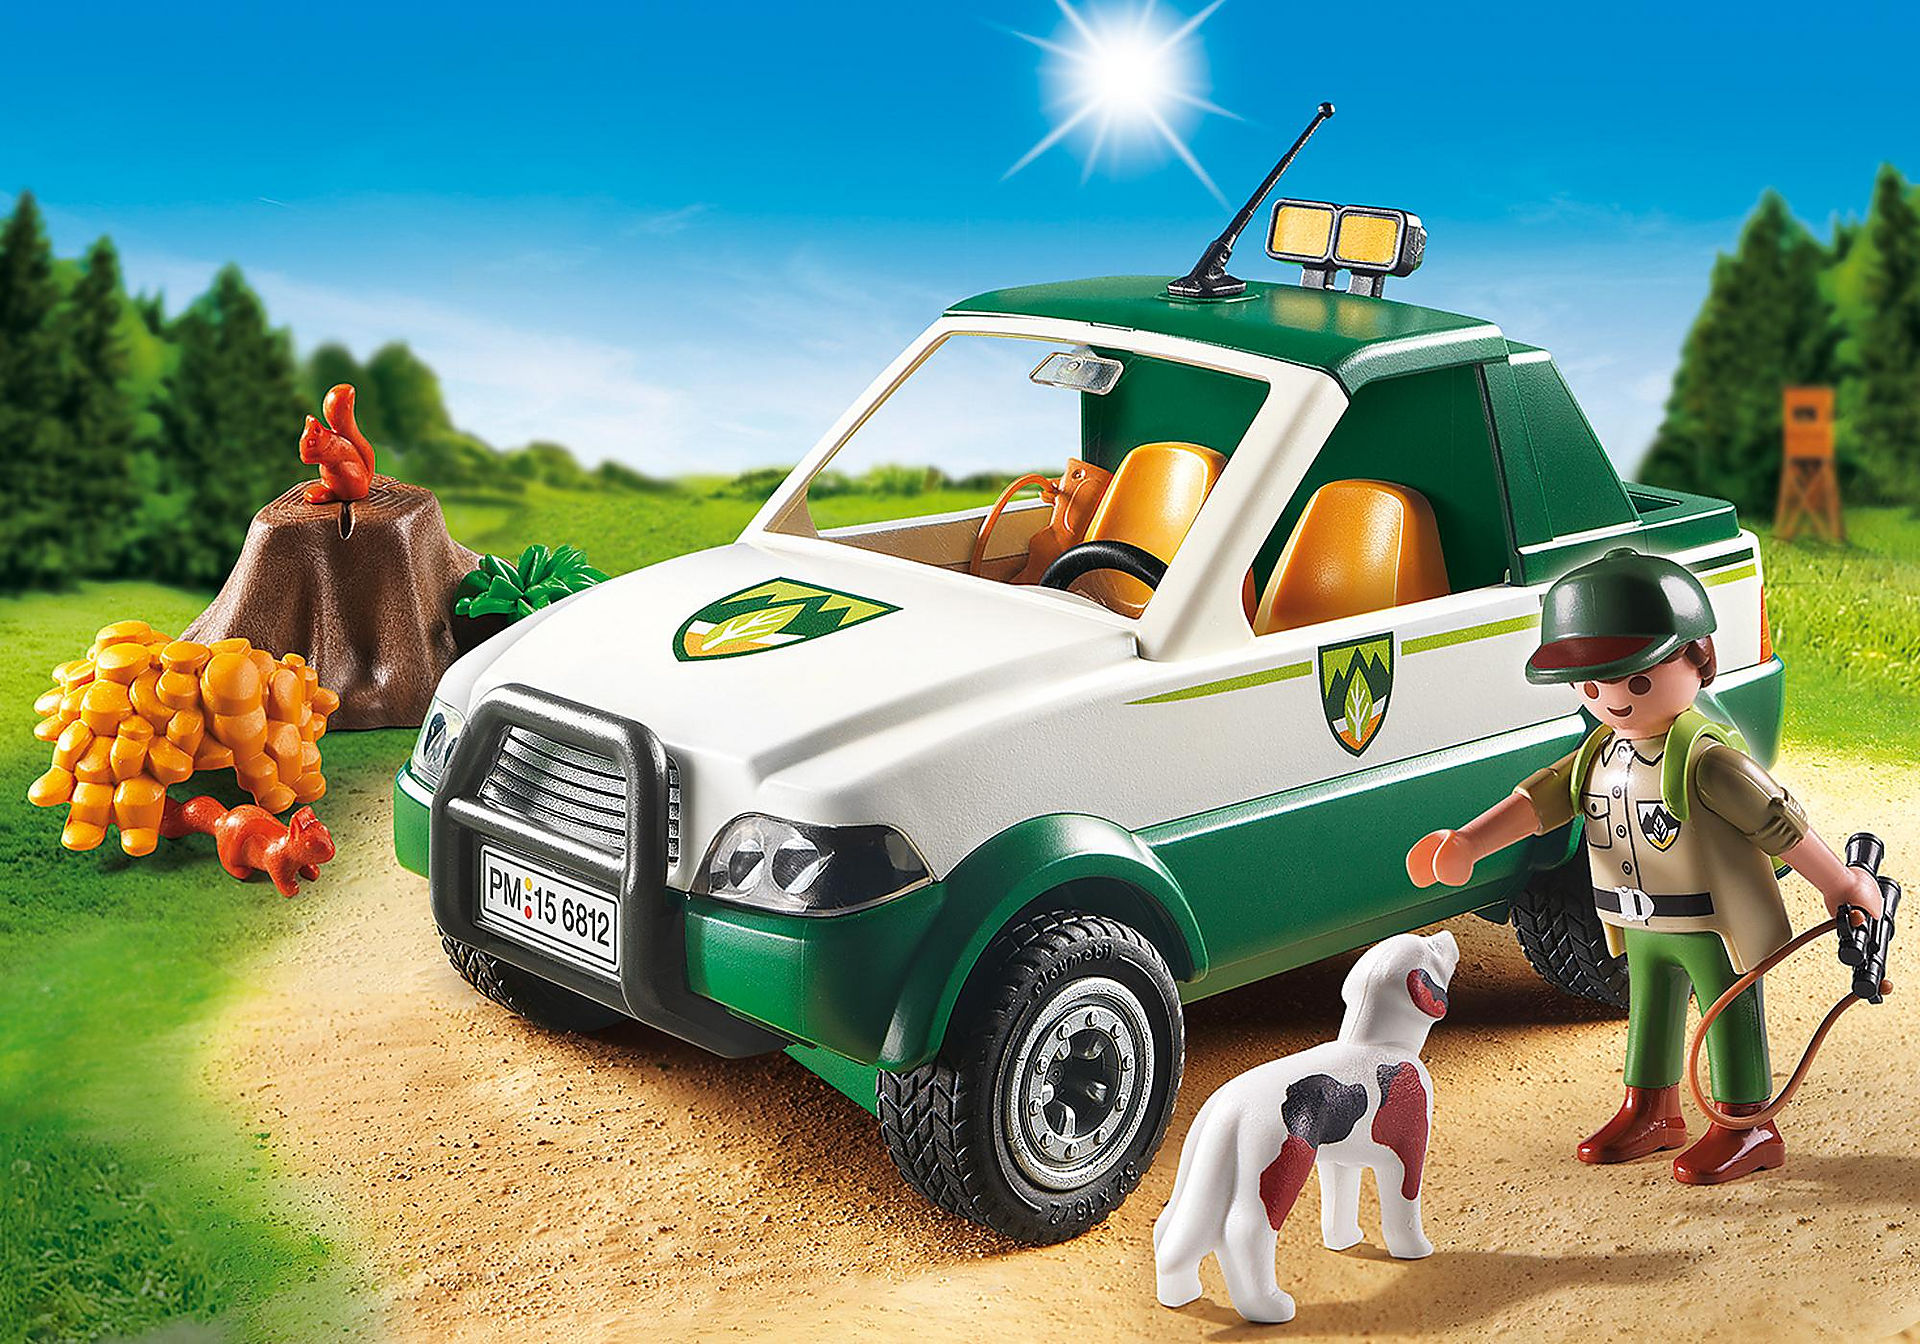 http://media.playmobil.com/i/playmobil/6812_product_detail/Förster-Pickup